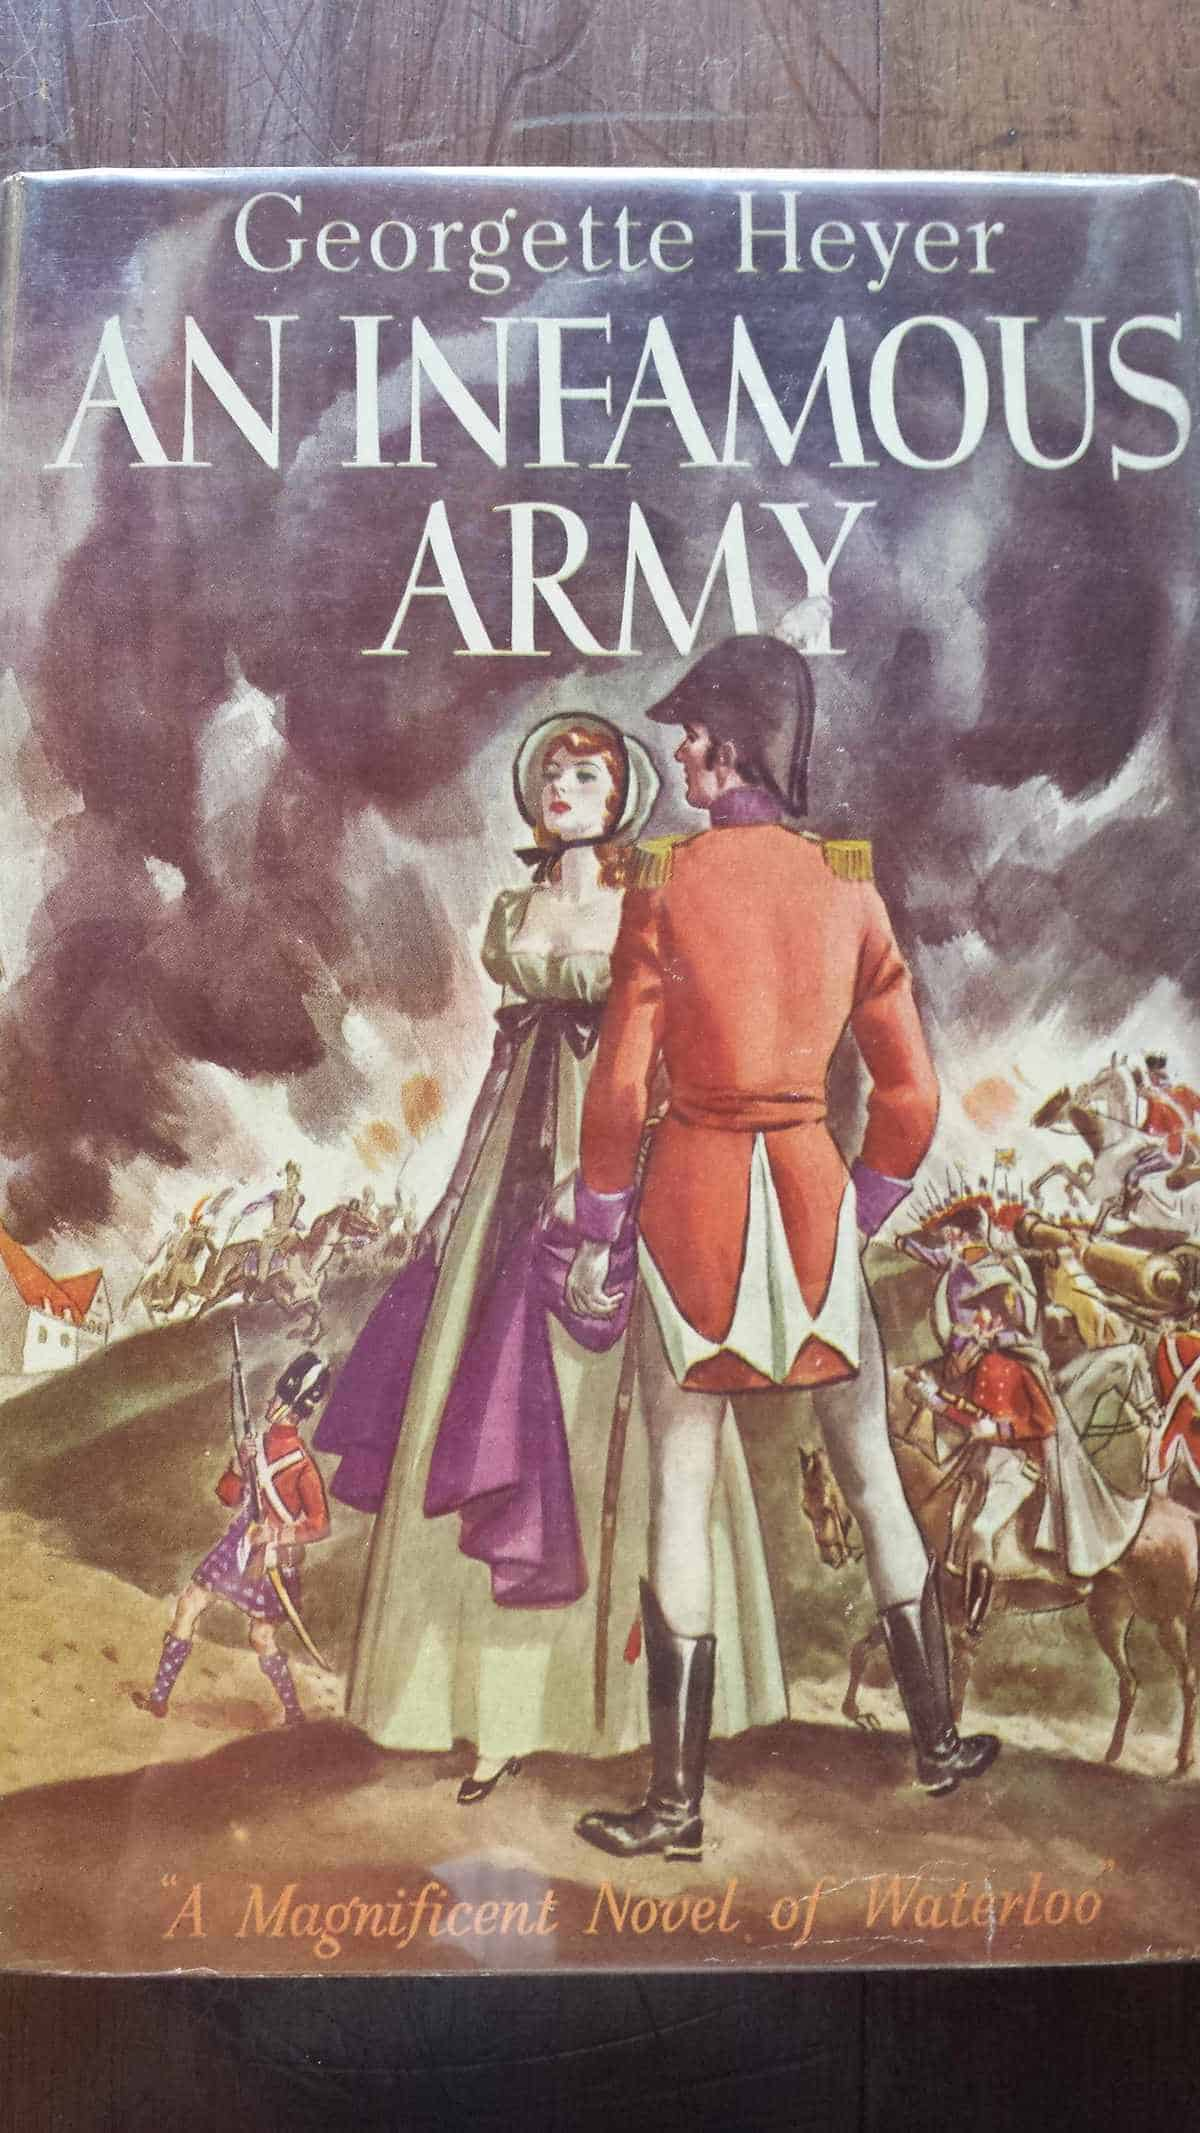 Georgette's novel of Waterloo An Infamous Army, the US first edition